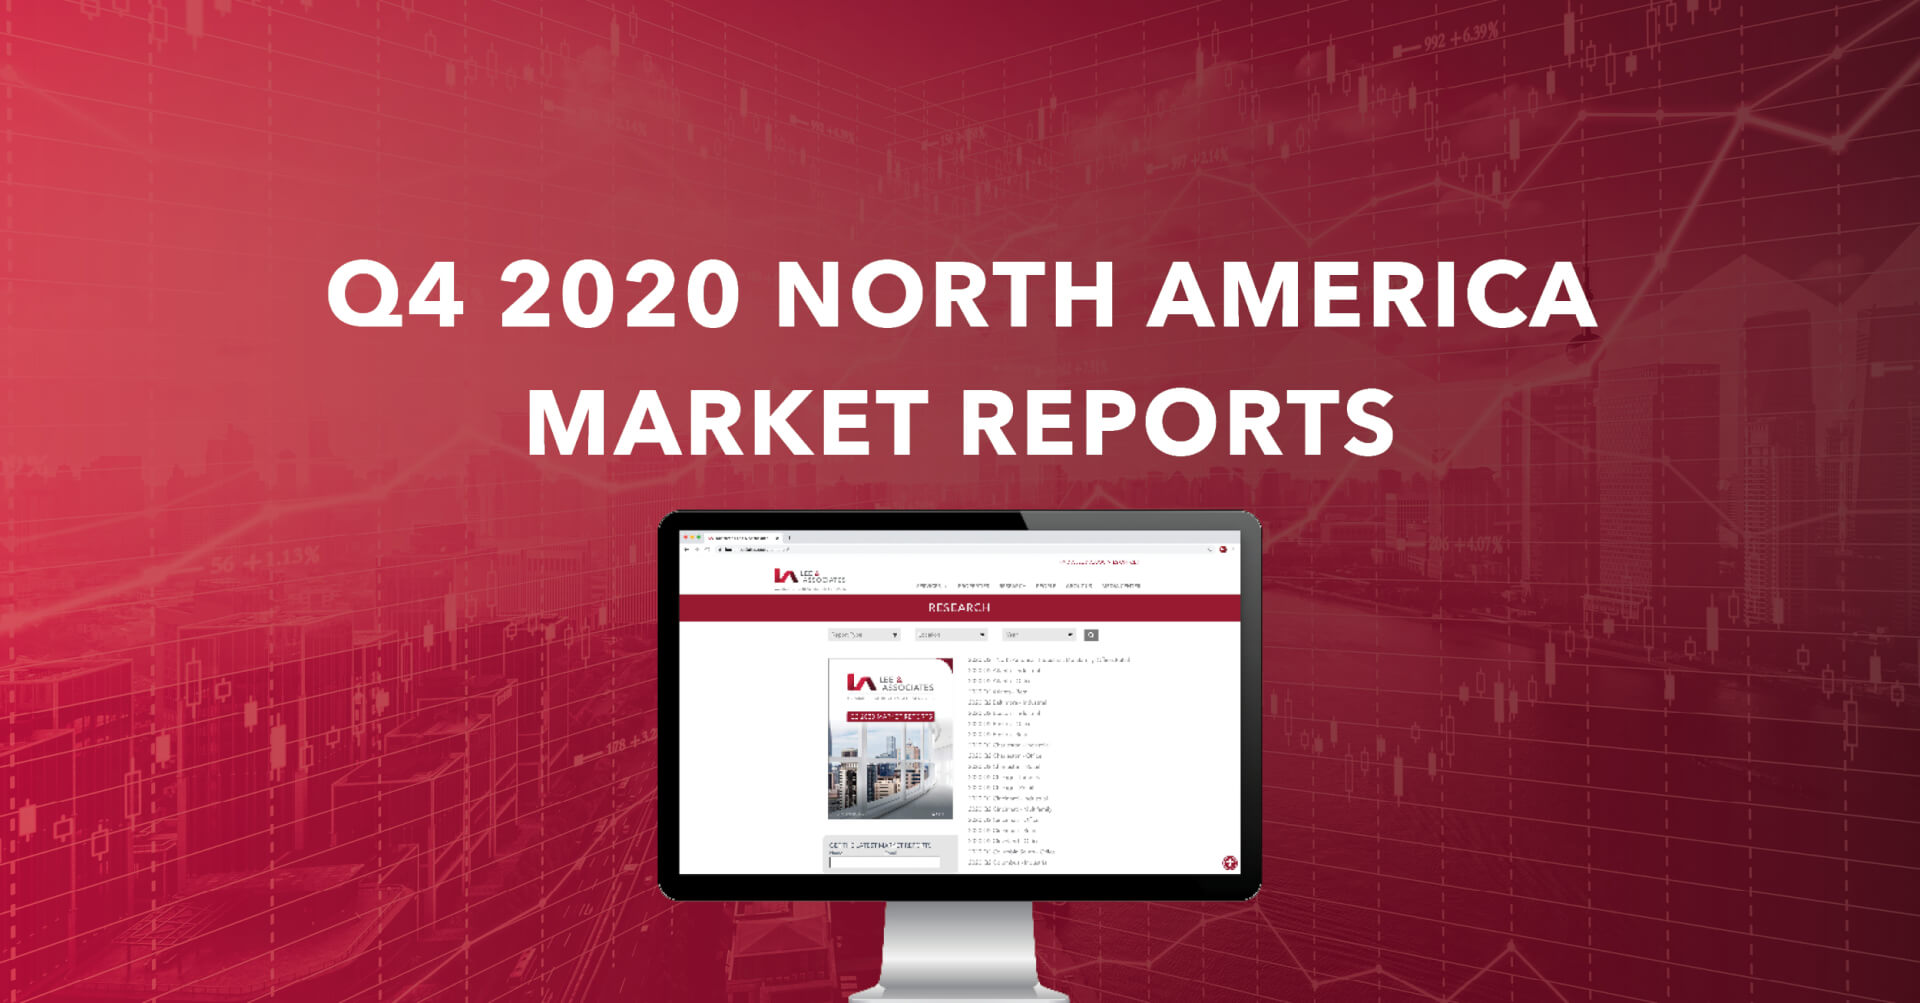 Q4 2020 North America Market Reports Released